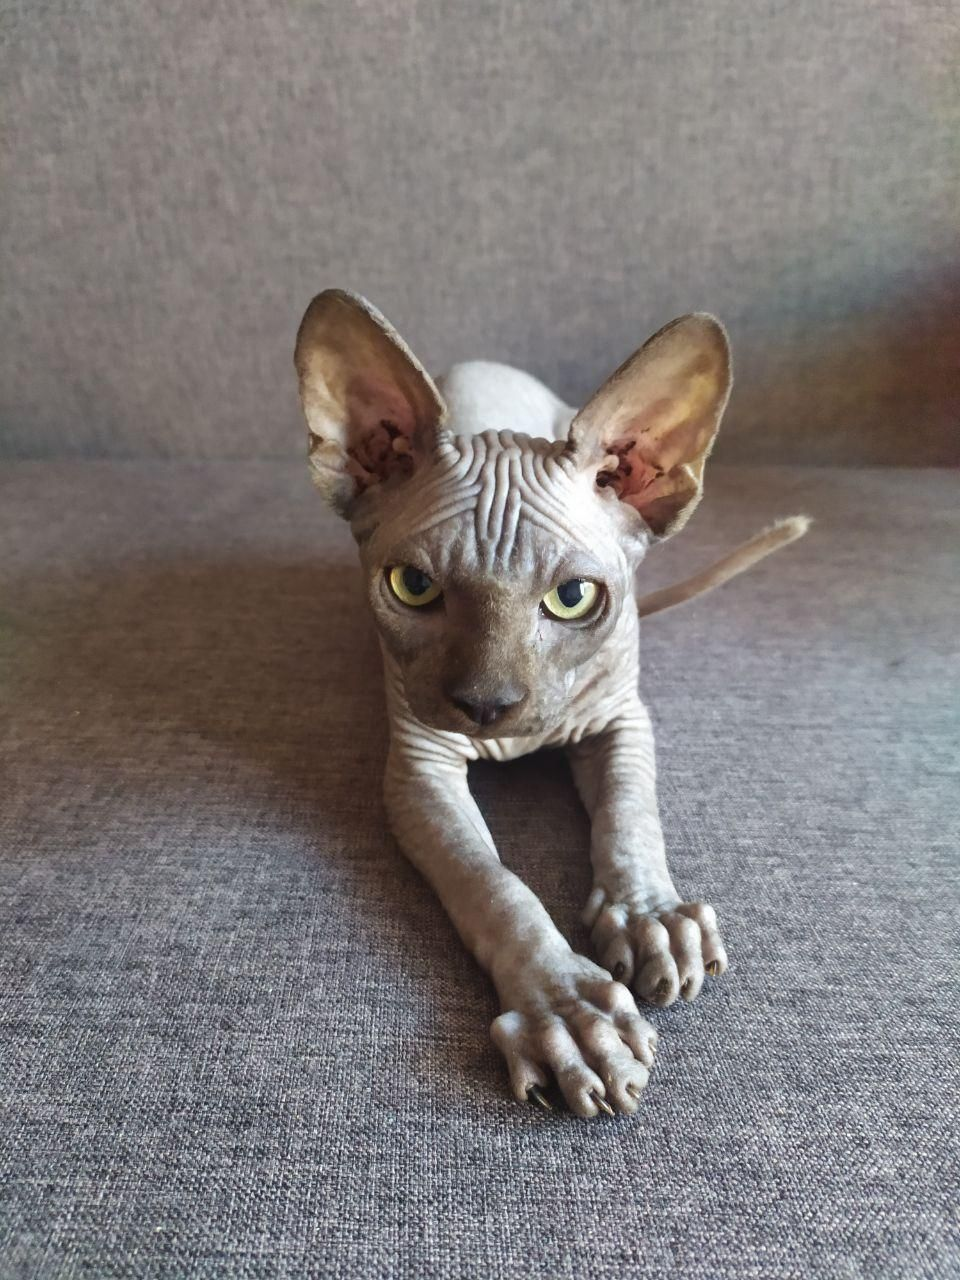 Pin By Isabella Caudill On With Love Sphynx In 2020 Cute Animals Sphynx Kittens For Sale Cat Breeder